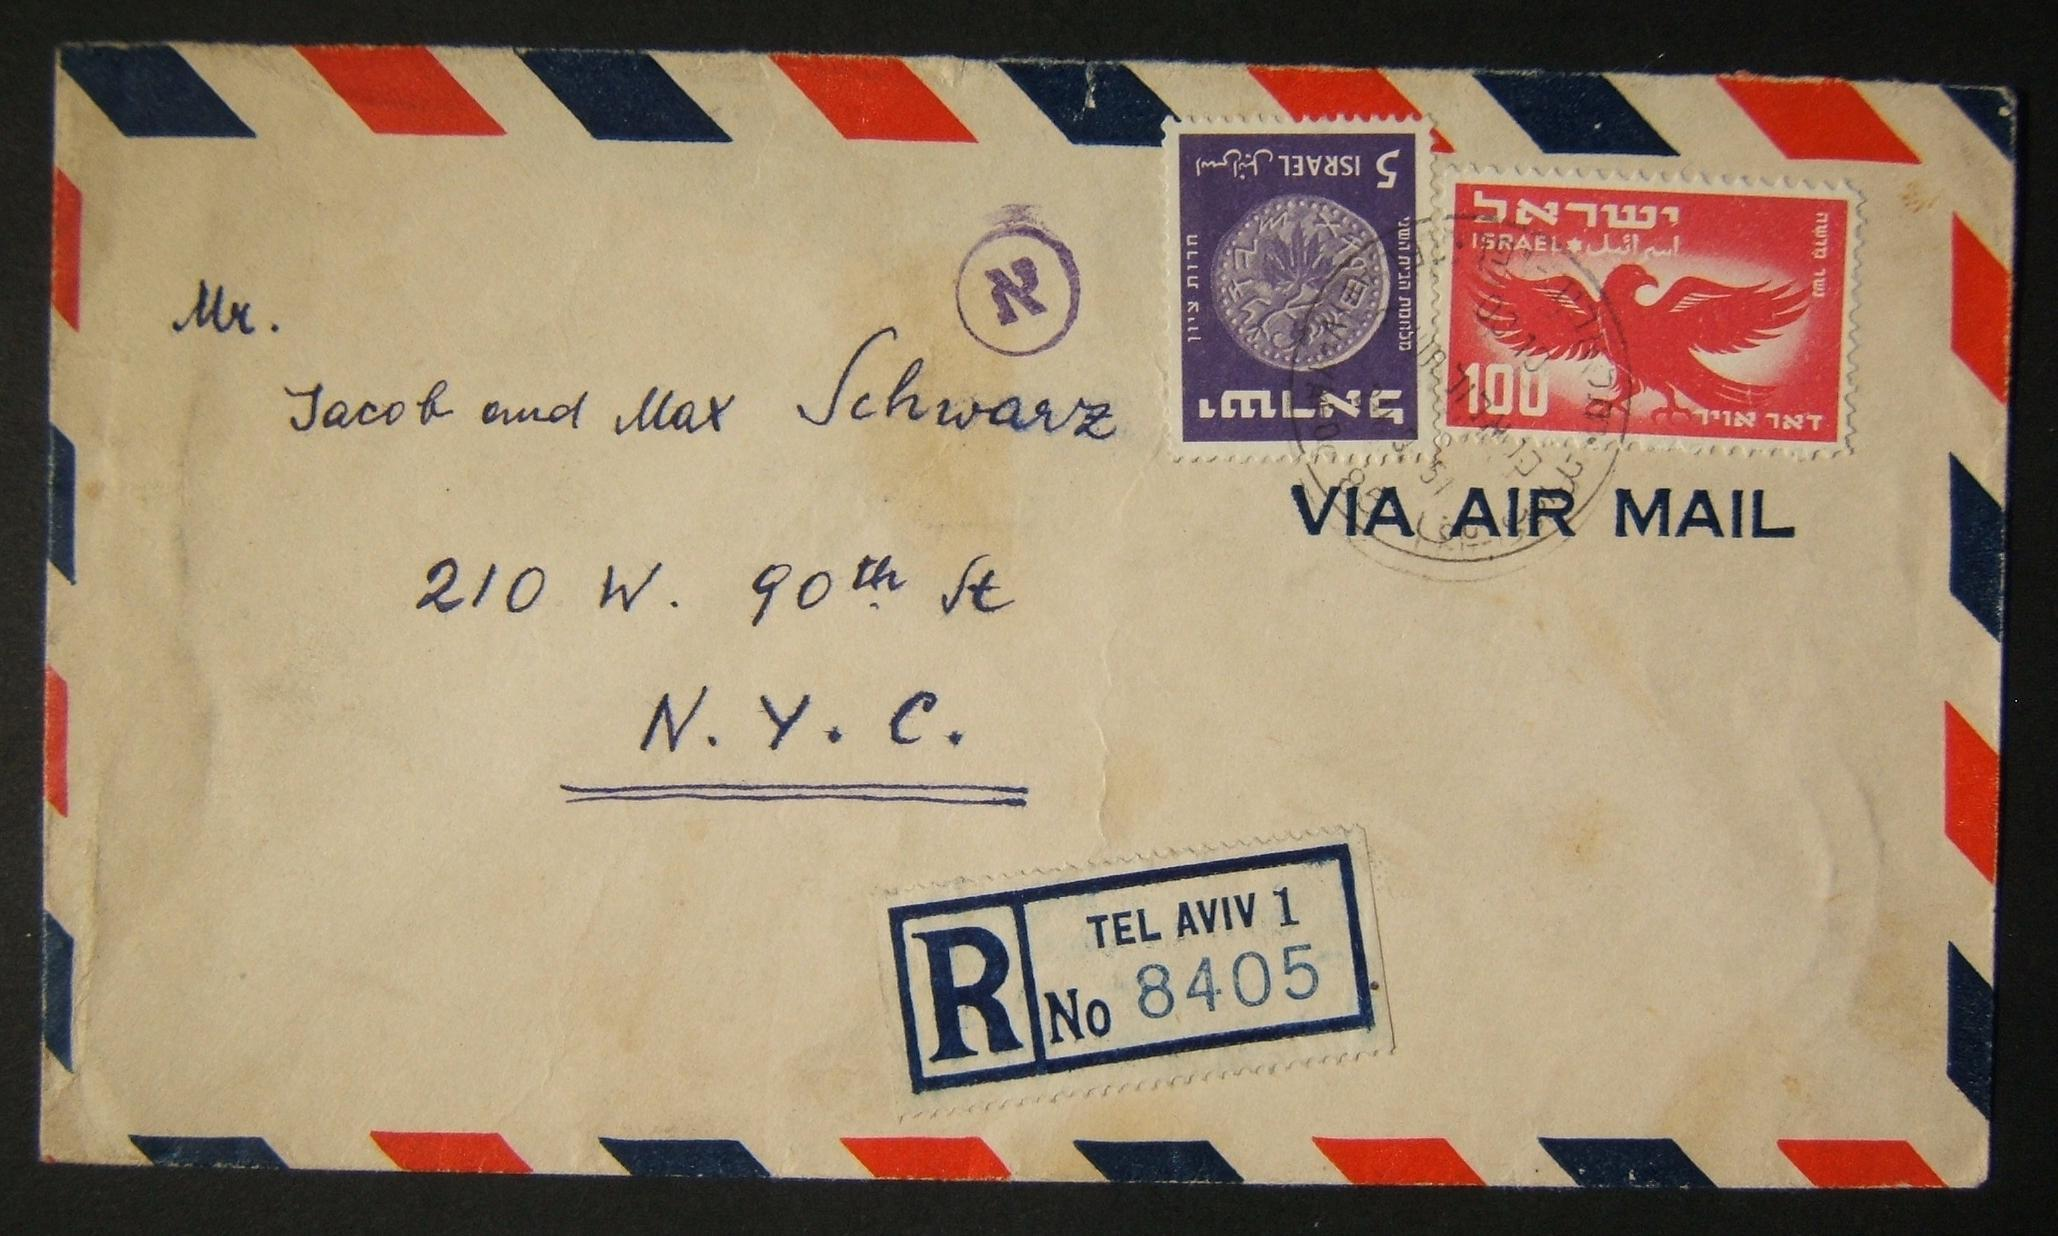 1950 1st airmail / PO's, rates & routes: 24-9-51 registered airmail cover ex TLV to NYC franked 105pr at the FA-2a period rate (80pr letter + 25pr registration) using 100pr (Ba36)